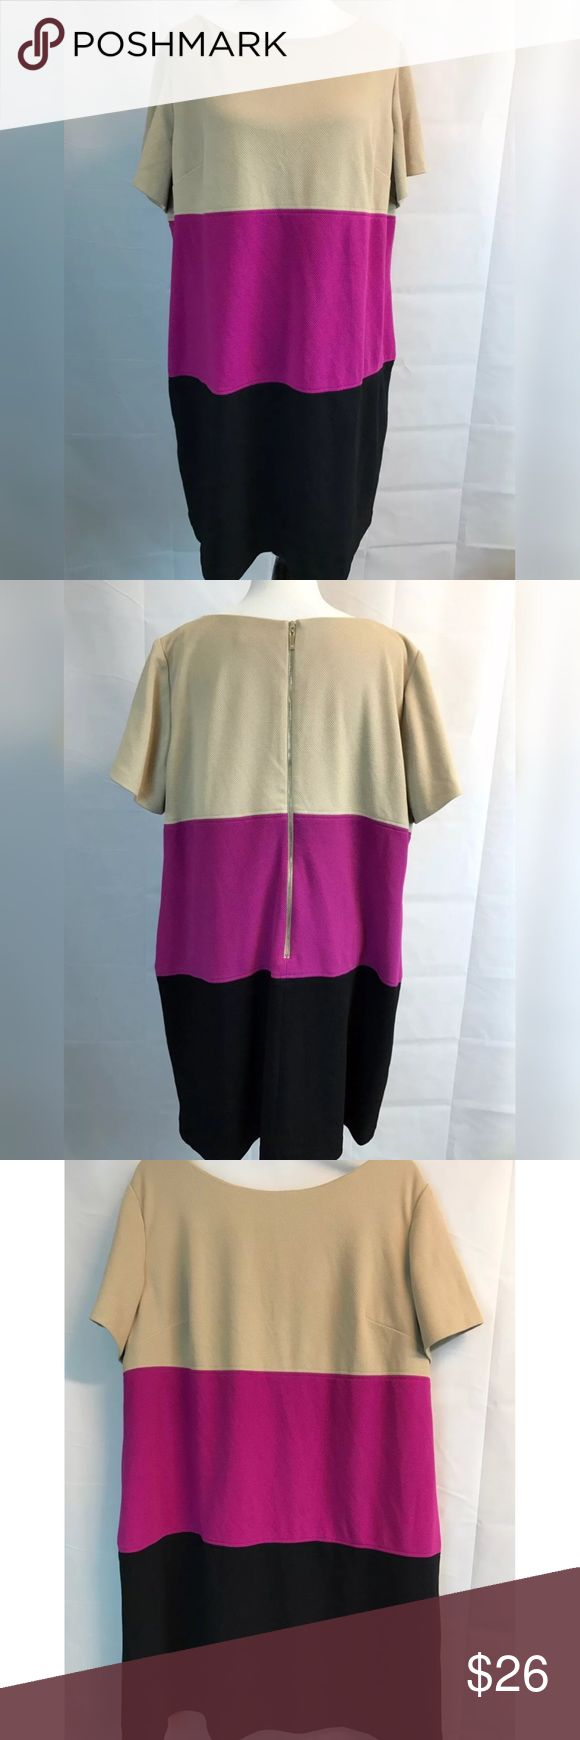 """Jessica Howard Women Dress Plus Sz 20W NWOT Flaw Jessica Howard Women Dress Plus Sz 20W NEW w/o tags Color Block Beige Pink Black Lined Armpit to armpit: 26 """" Small part of thread is undone near the neckline (inside). Please look at photos. New without tags. Jessica Howard Dresses Midi"""